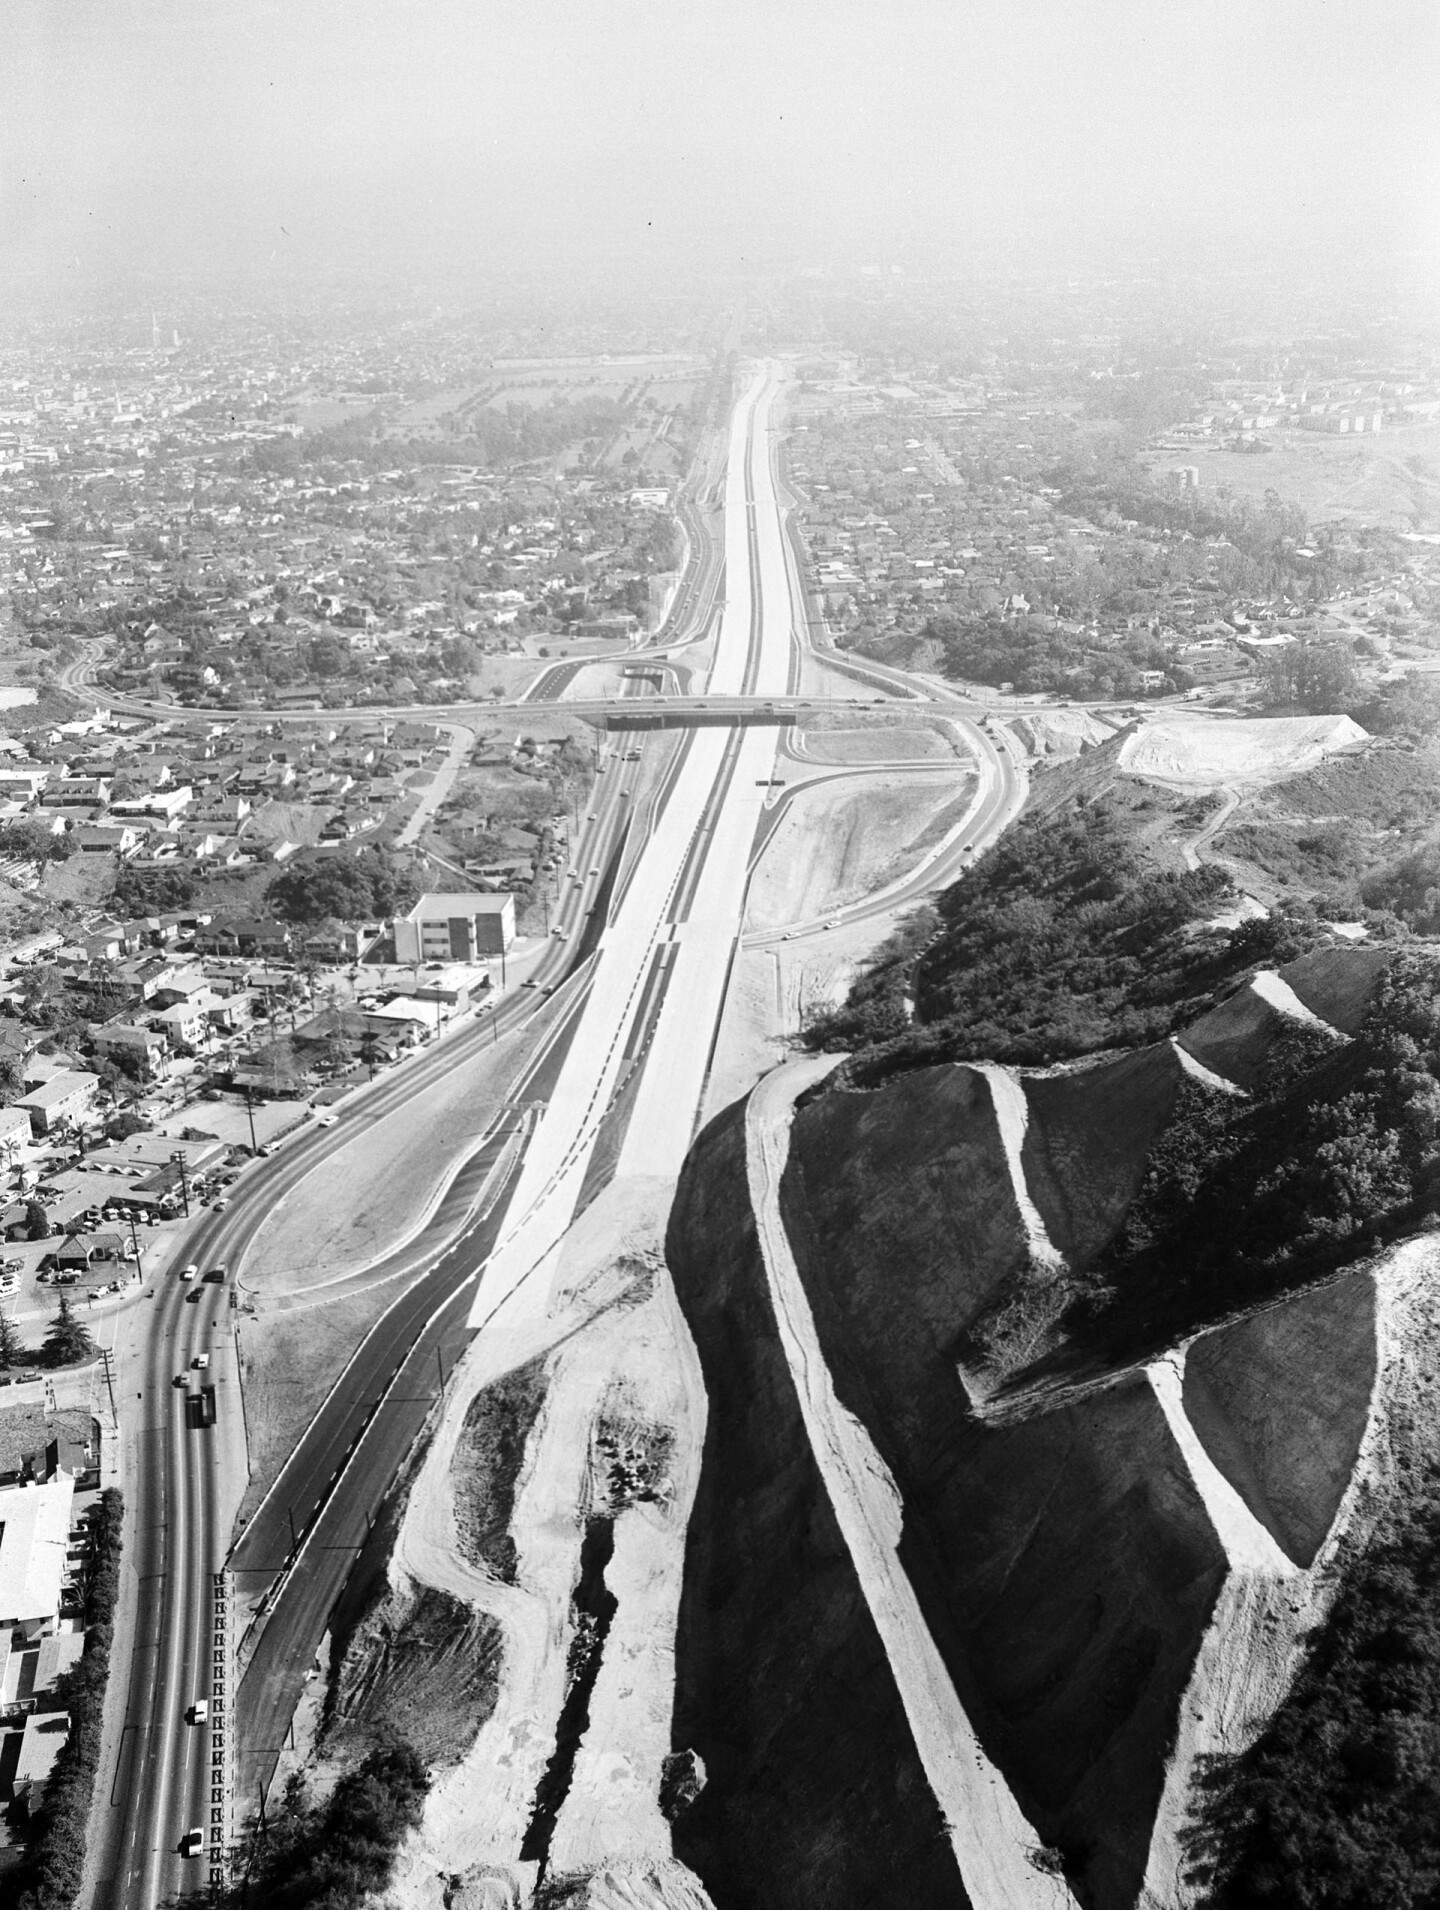 1957 aerial view of the San Diego (I-405) Freeway under construction through Sepulveda Canyon